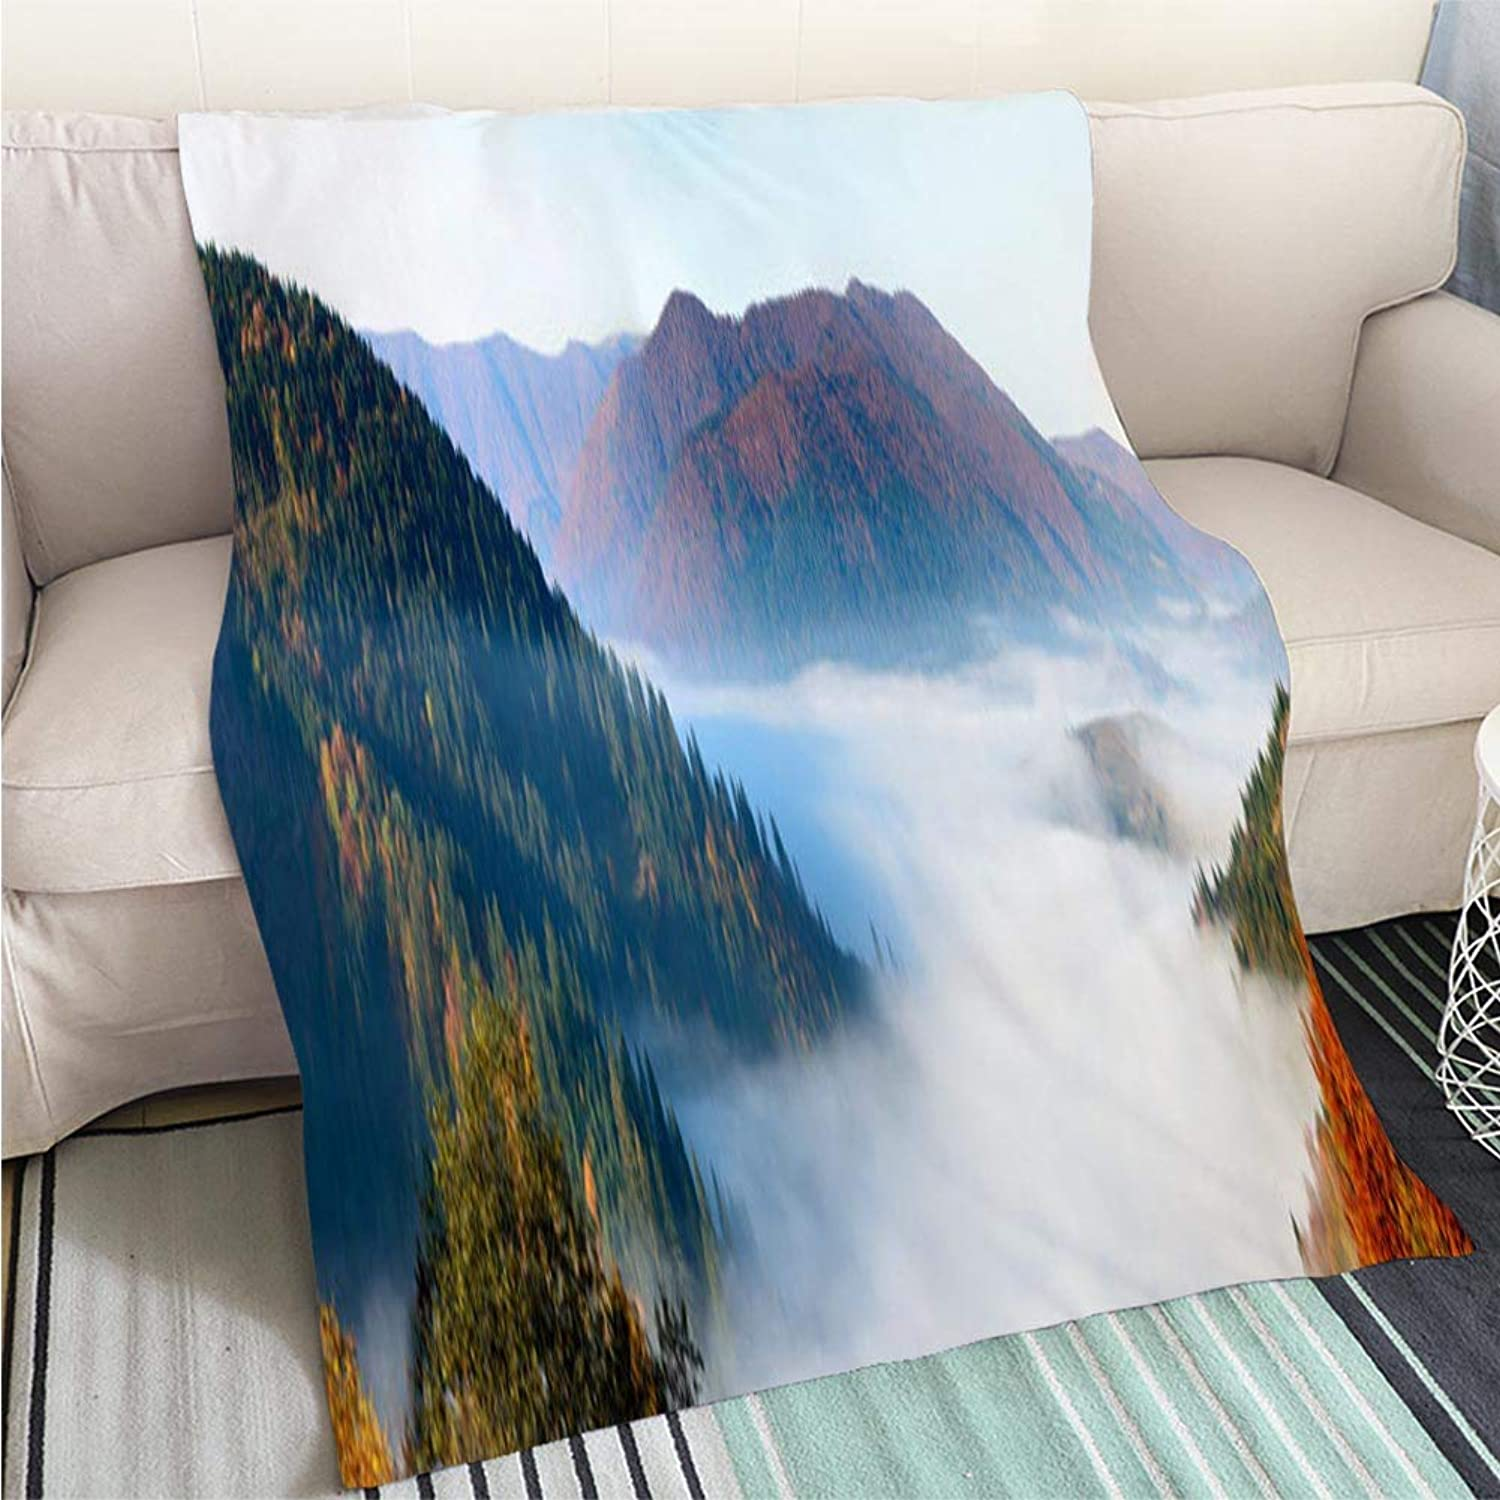 BEICICI Art Design Photos Cool Quilt Autumn Landscape with Fog in The Mountains Fir Forest on The Hills Carpathians Ukraine Europe Art Blanket as Bedspread gold White Bed or Couch